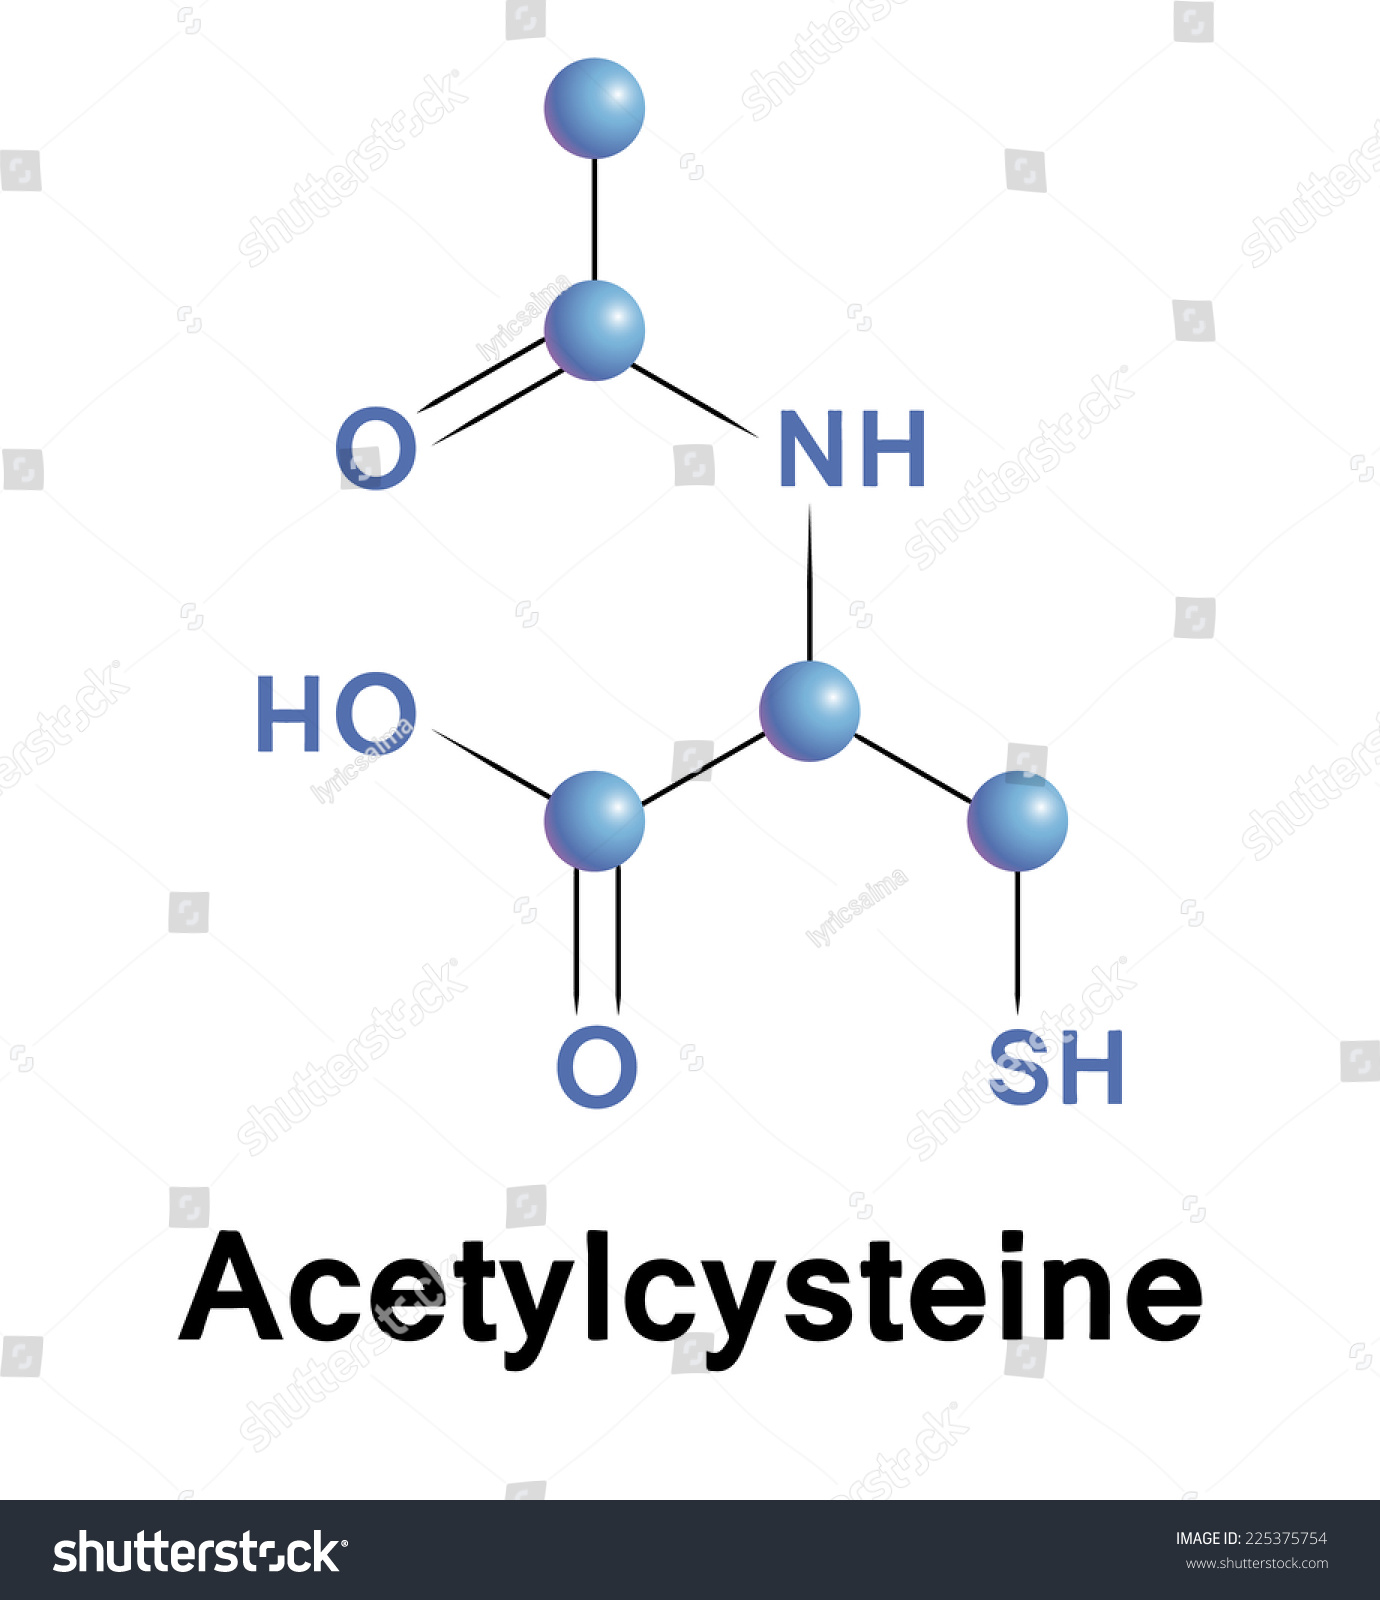 Acetylcysteine Chemical Formula Of Mucolytic For Cough And Cold. Vector. - 225375754 : Shutterstock